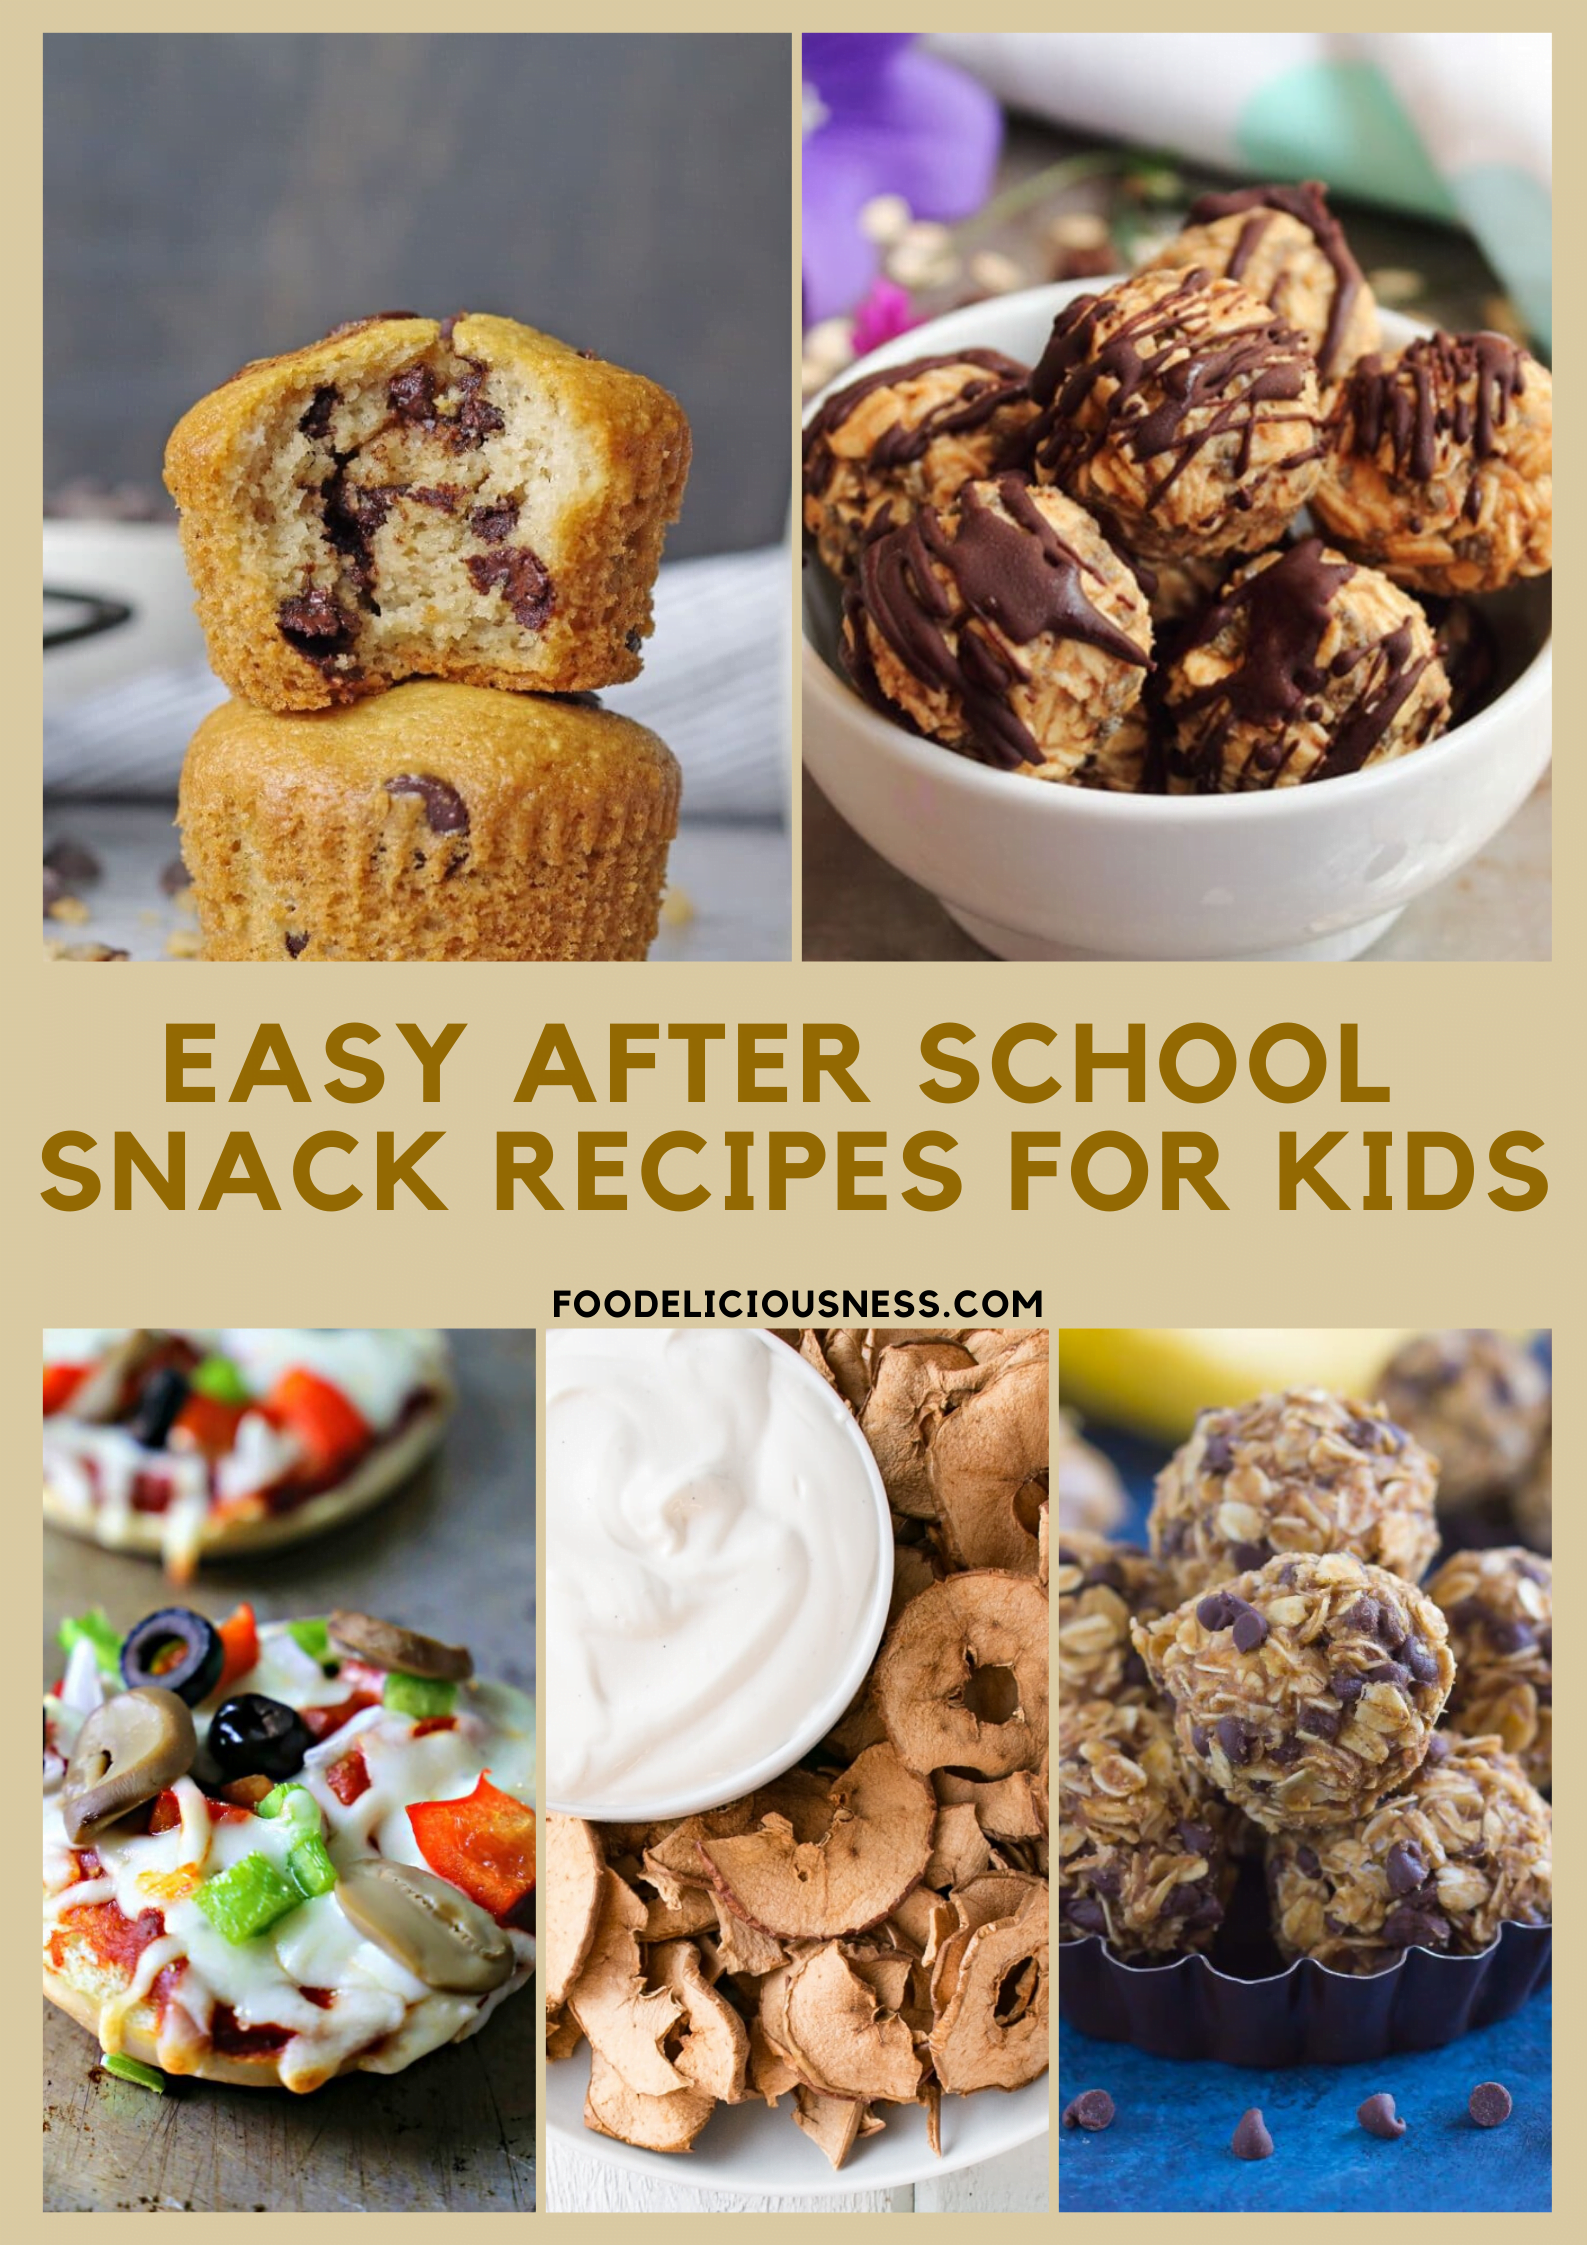 Going back to school is always a great joy for the kids, but also a topic for you on how to provide them with nutritious and healthy meals on a daily basis. So, if you looking for some easy after school snack recipes for kids, we have here a collection of a few really good ideas. With these simple and great recipes, you will delight them. #afterschoolsnackrecipesforkids #afterschoolsnackrecipeshealthy #easysnackrecipes @foodeliciousness